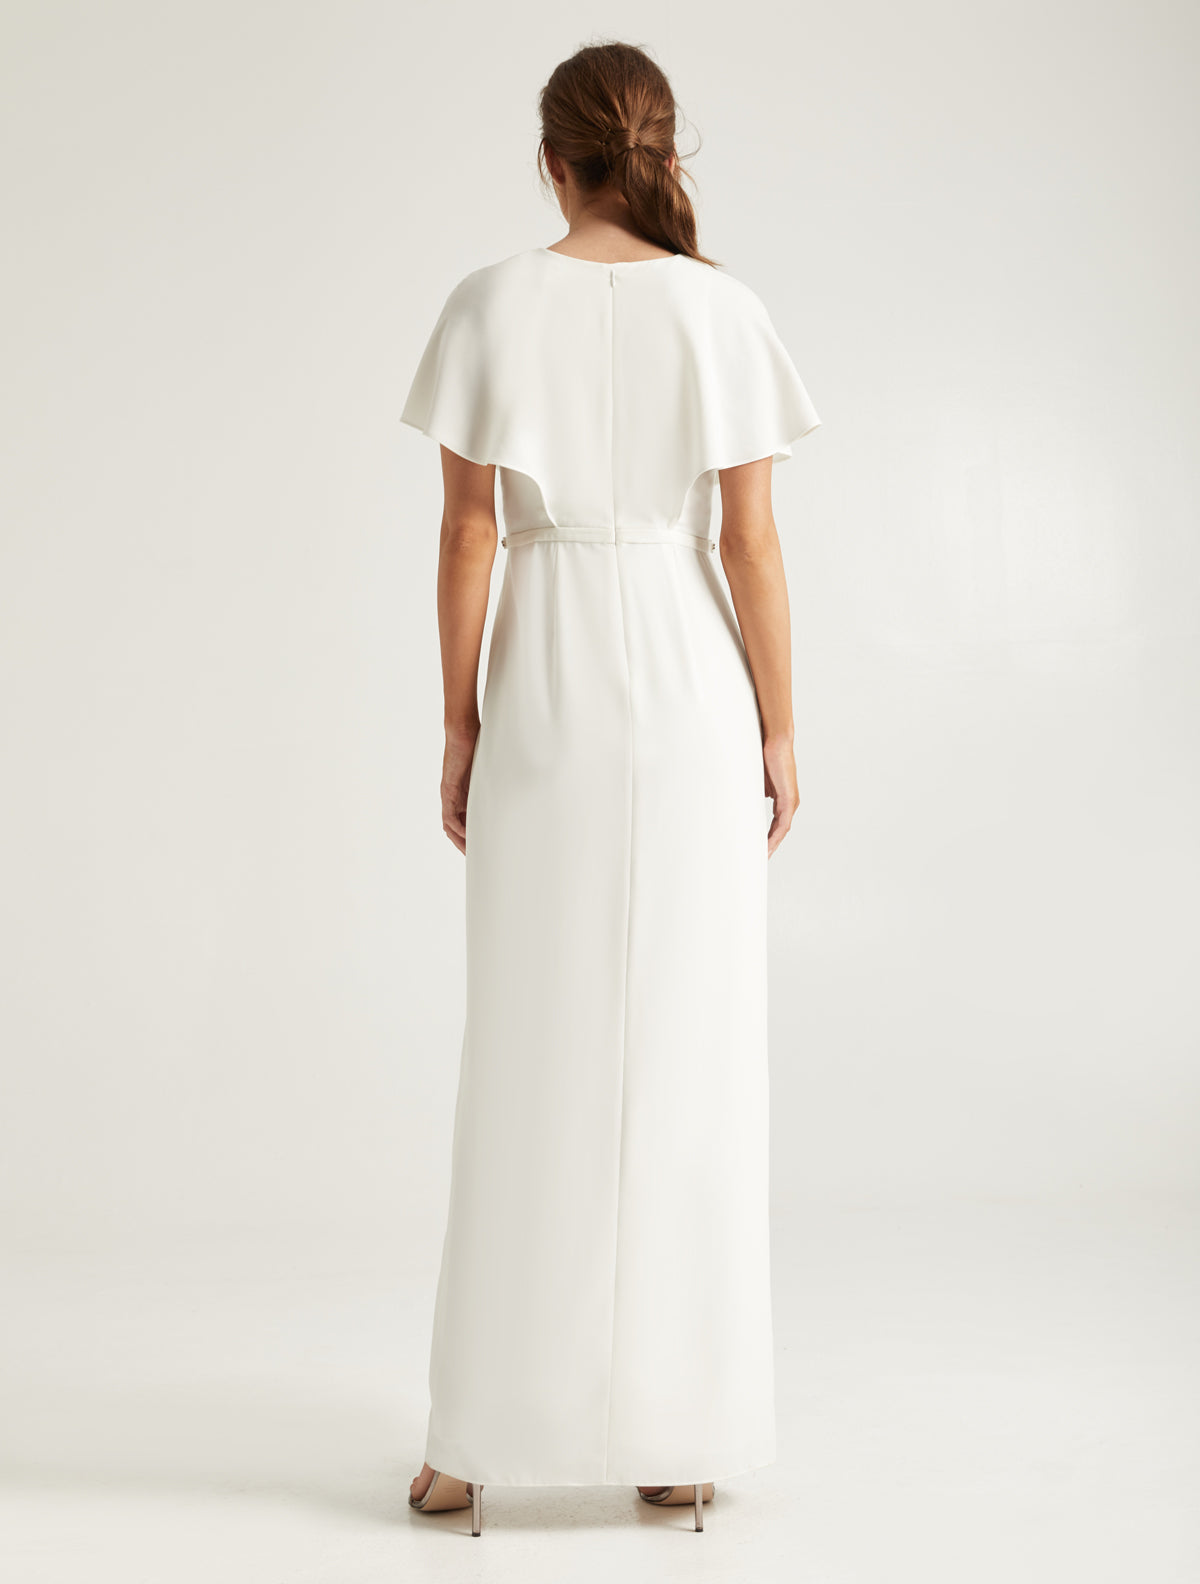 Embellished Insert Gown - Halston